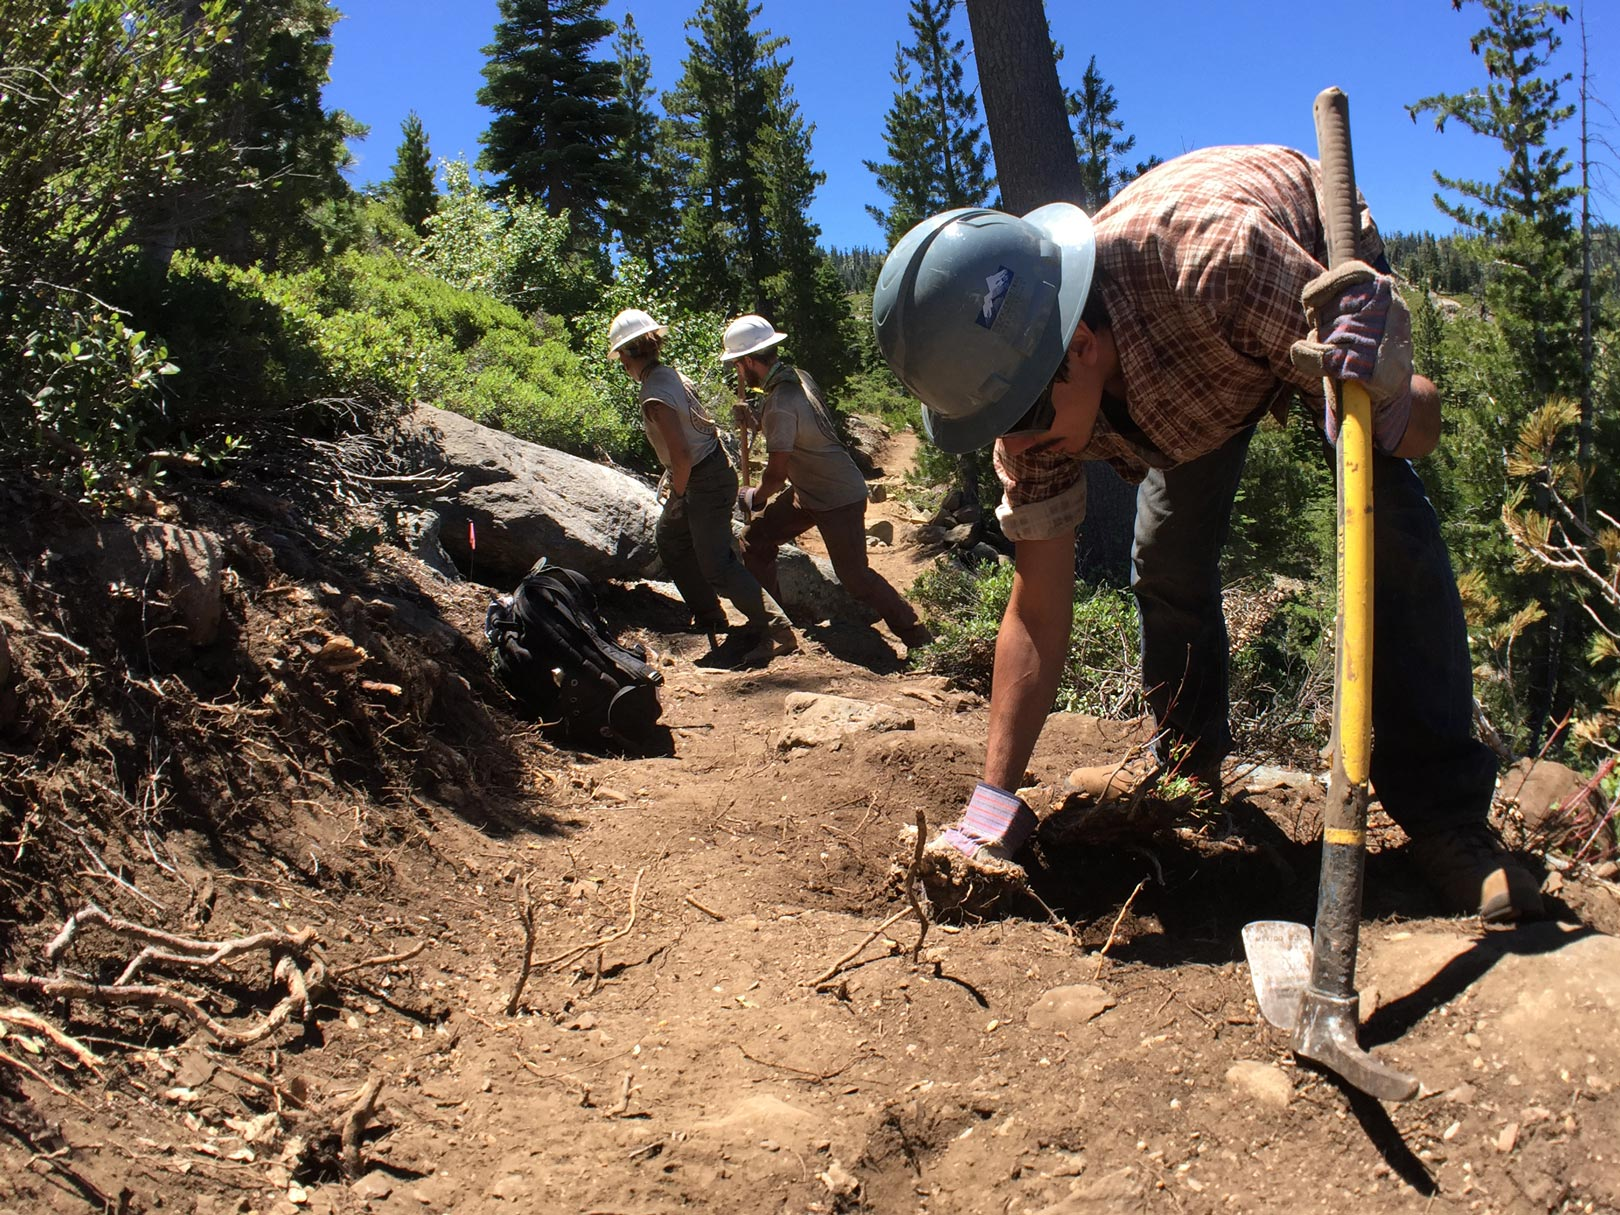 Building this new section of PCT involved multiple years of pulling roots and rocks out of the ground. Photo by Clare Major.